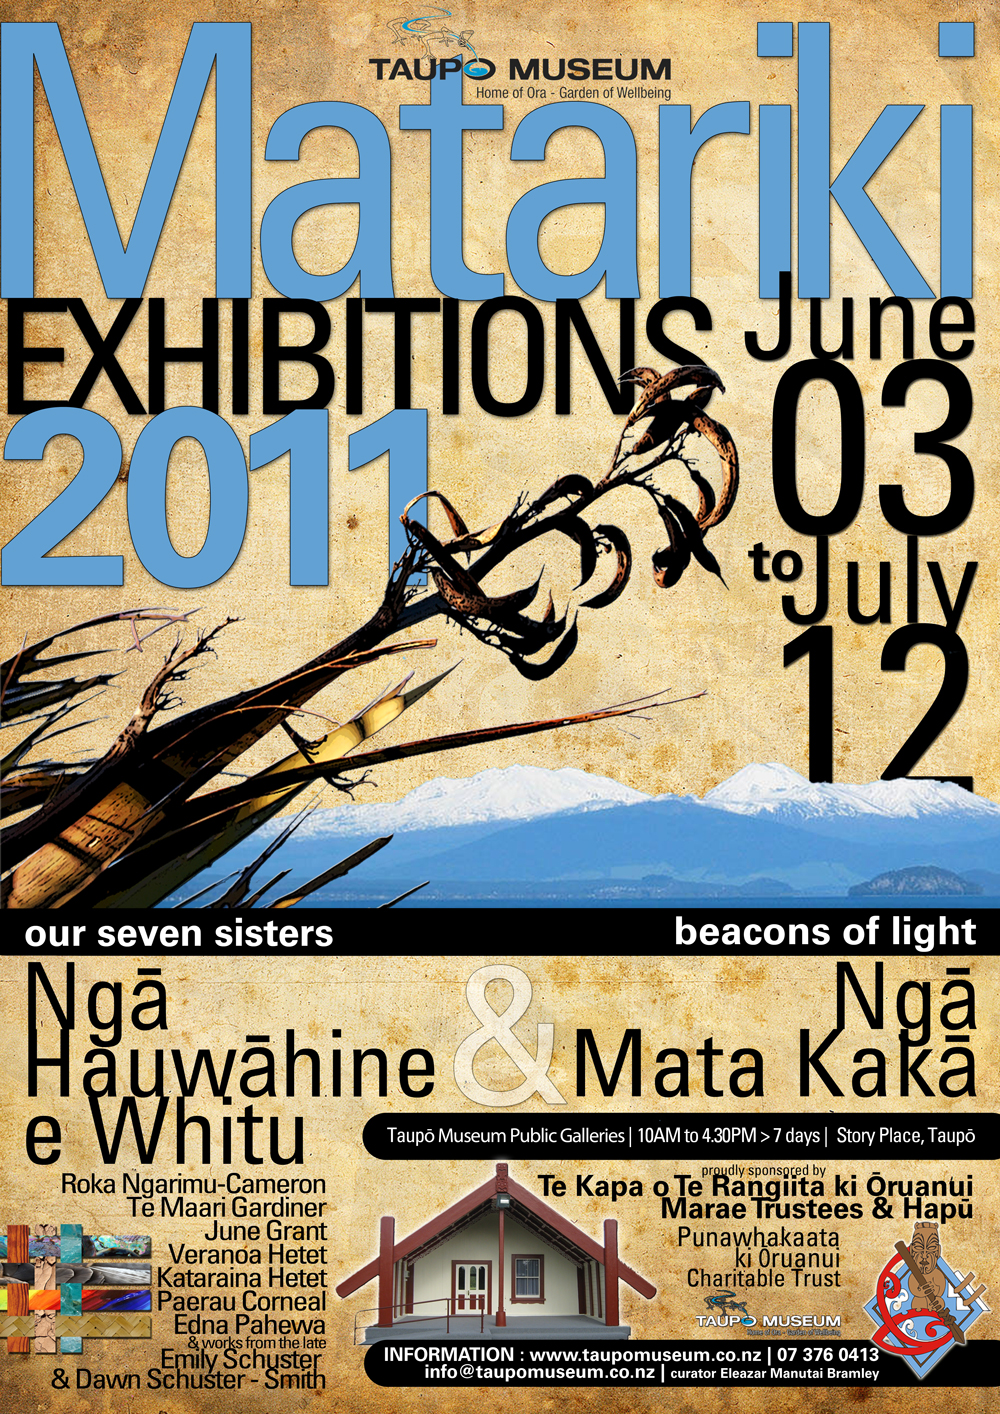 MATARIKI EXHIBITIONS Taupō Museum June 03 to July 12